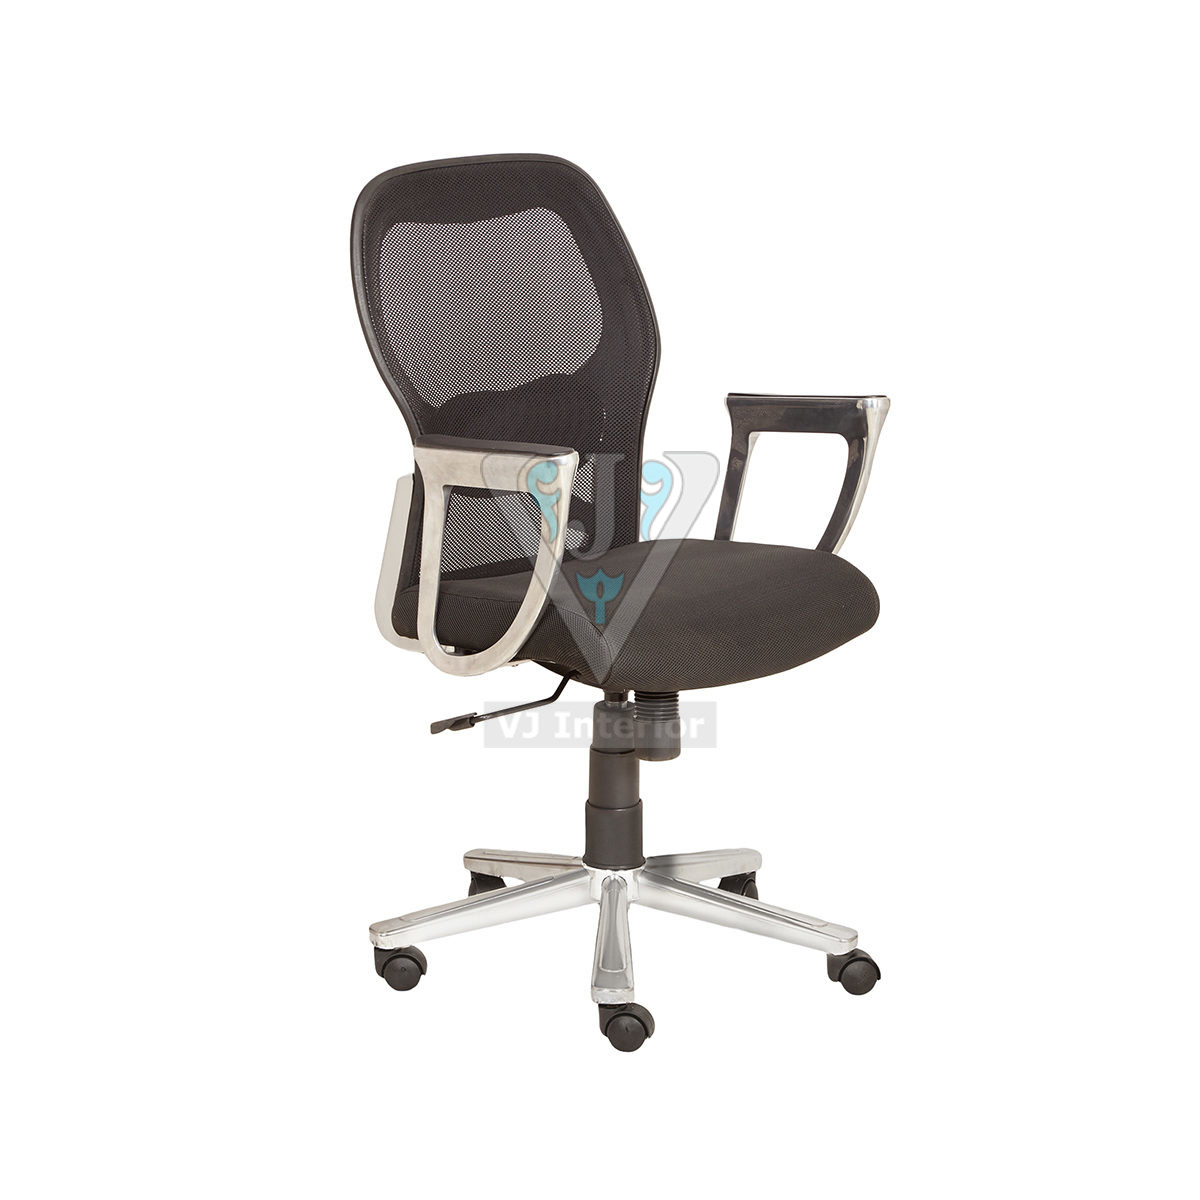 Backsupport Revolving Mesh Office Chair